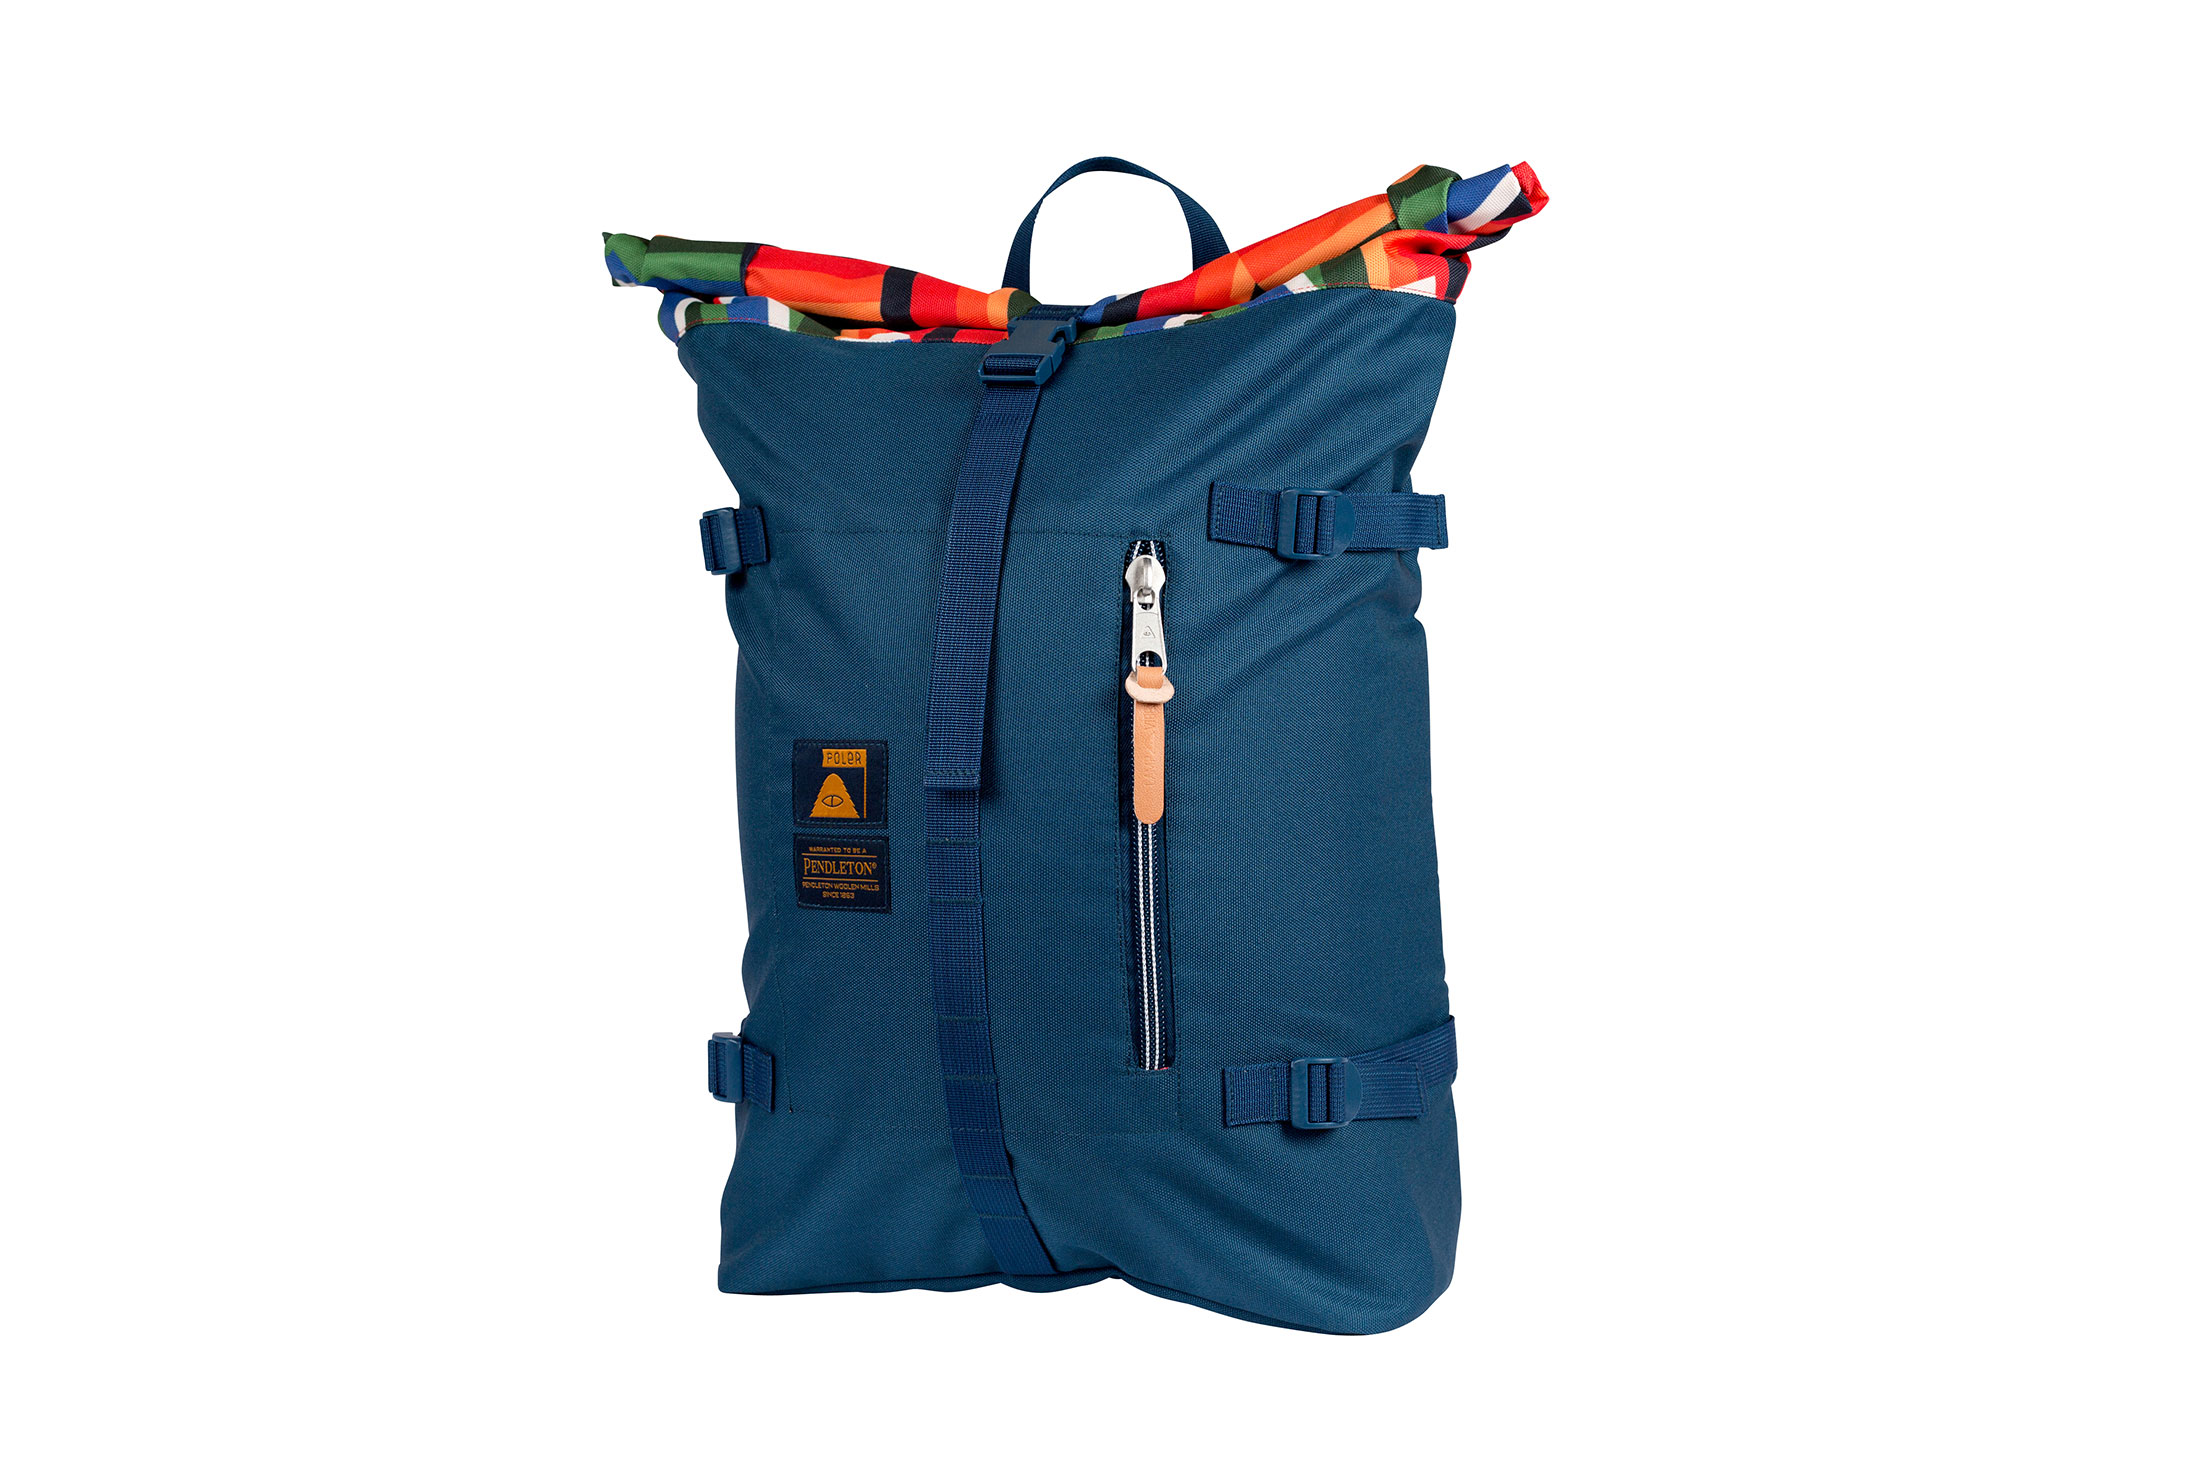 Poler x Pendleton 2016 Fall/Winter Collection camping essentials orange green red blue - 1762260